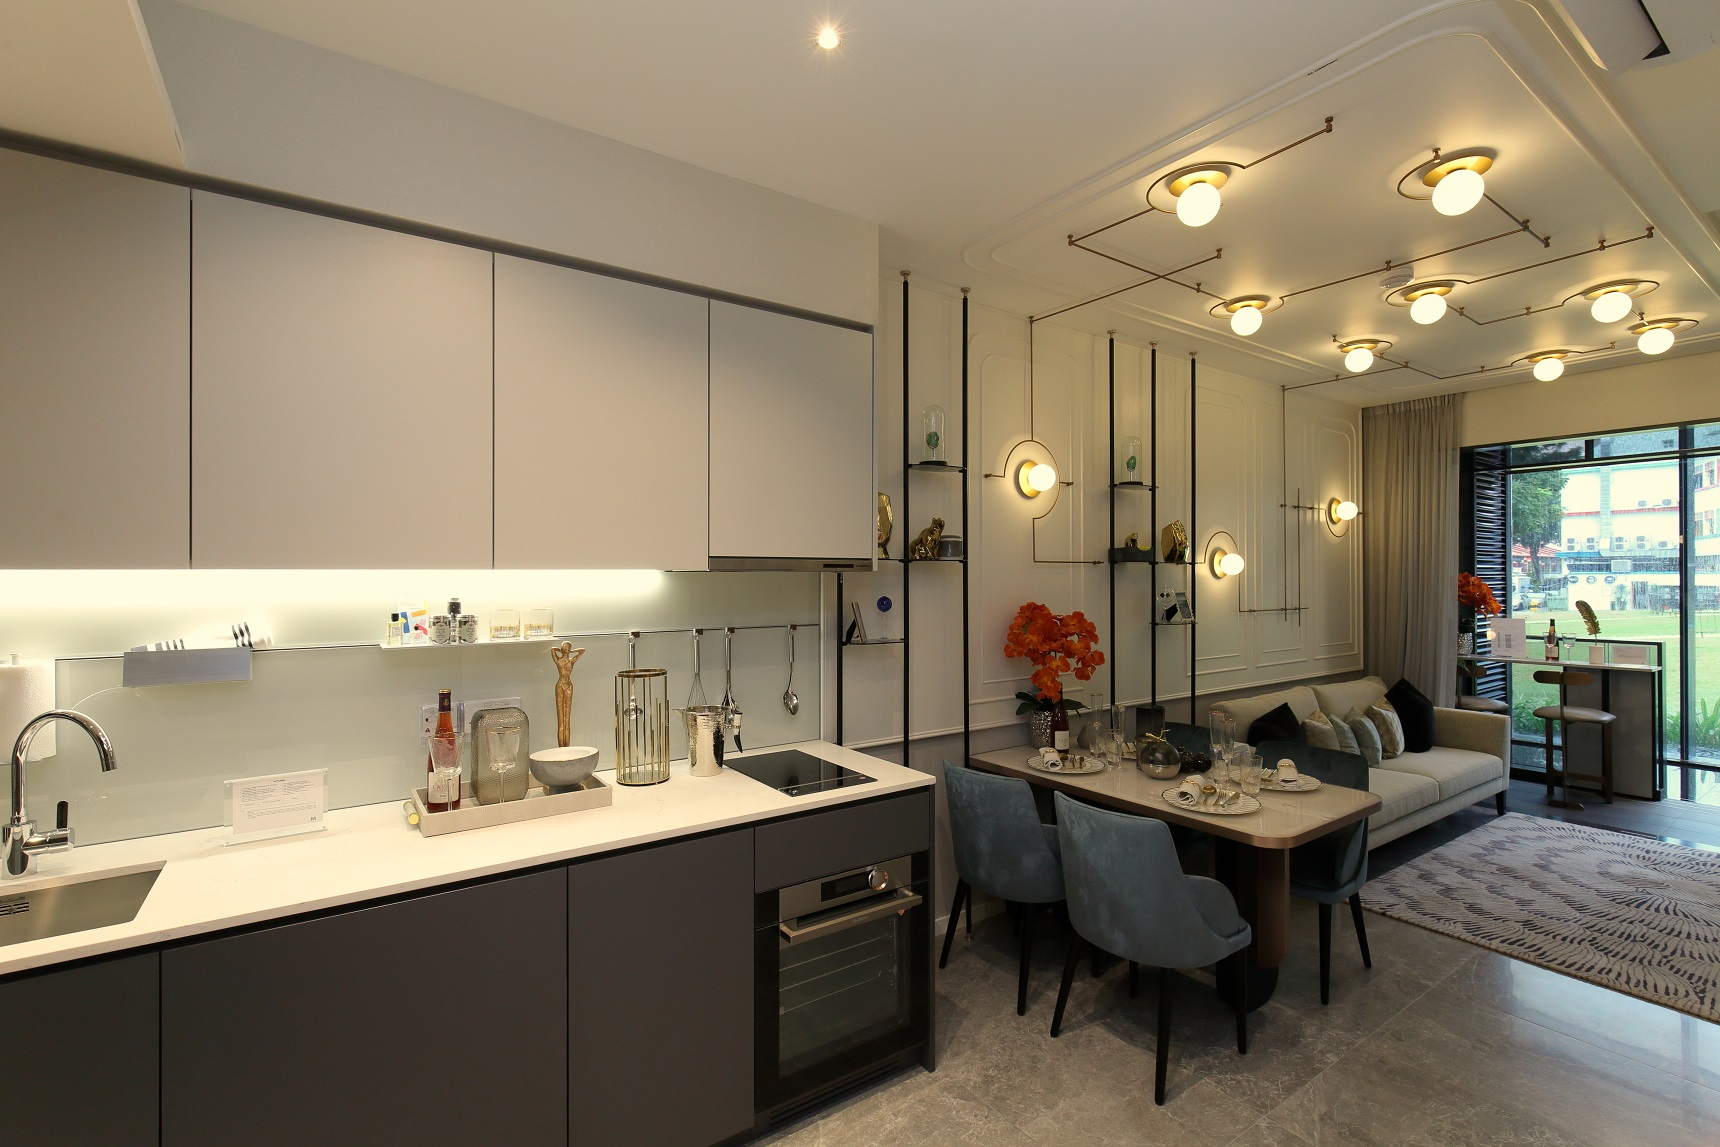 The open kitchen of the two-bedroom-plus-study is fitted with a hanging rack in addition to storage cabinets (Photo: Samuel Isaac Chua/EdgeProp Singapore) - EDGEPROP SINGAPORE